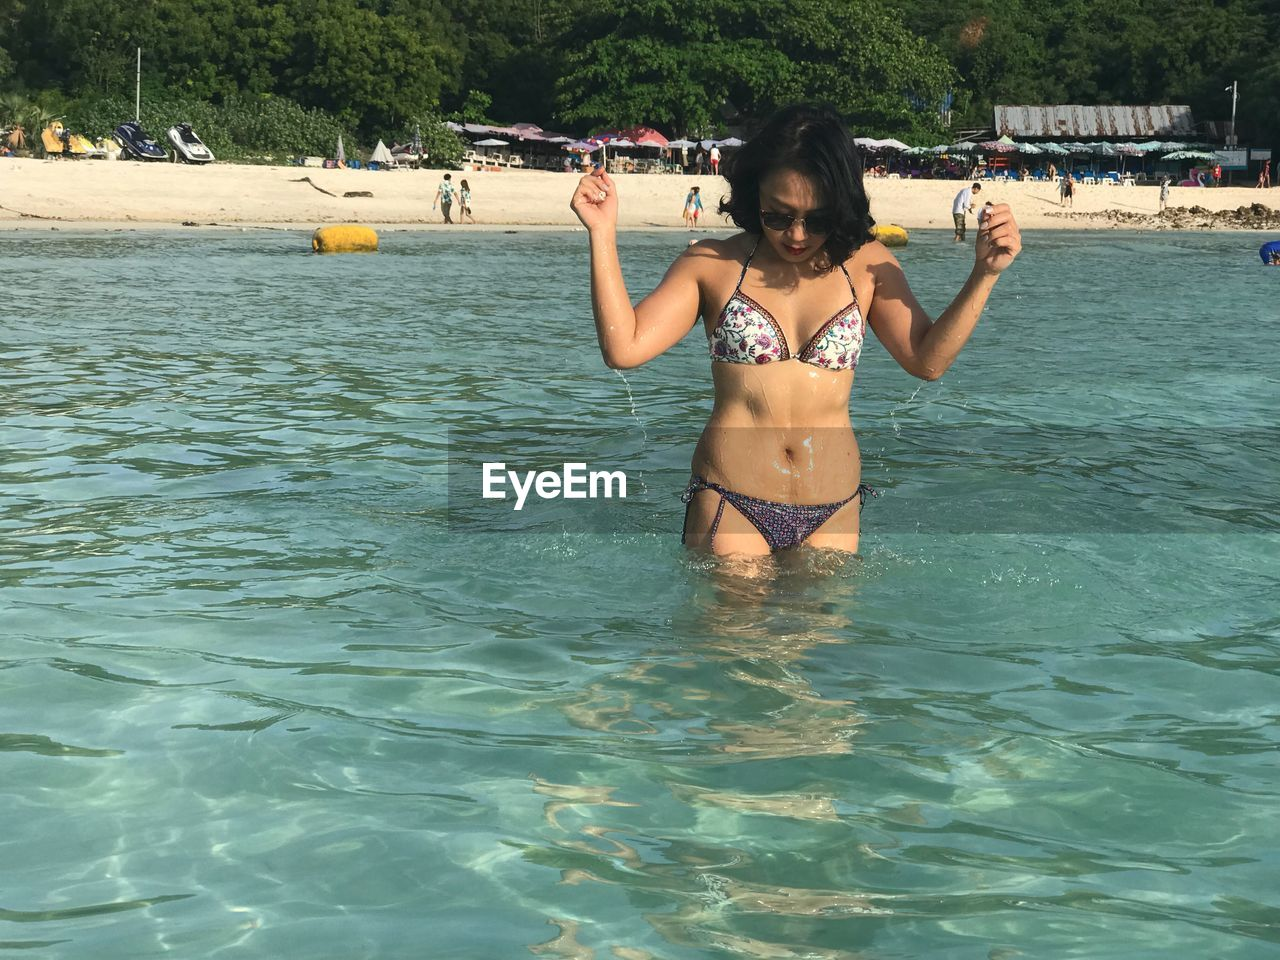 water, real people, leisure activity, one person, lifestyles, swimwear, waterfront, bikini, sea, day, nature, trip, holiday, vacations, sunlight, standing, front view, weekend activities, outdoors, human arm